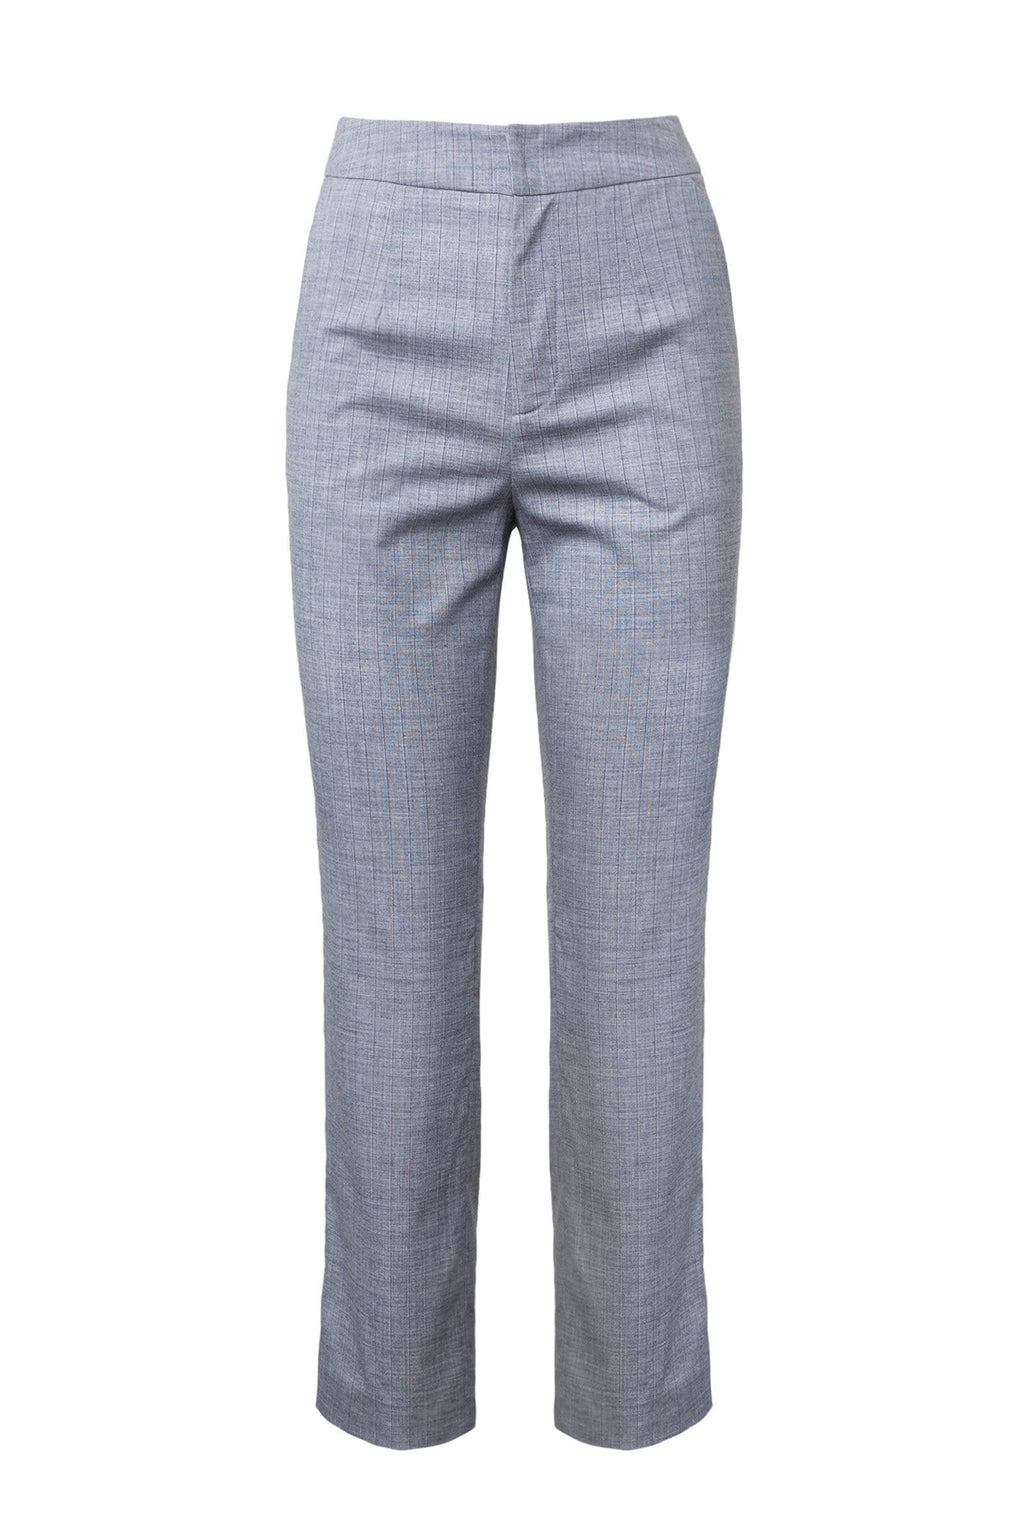 Carmen Pants in Grey Blue